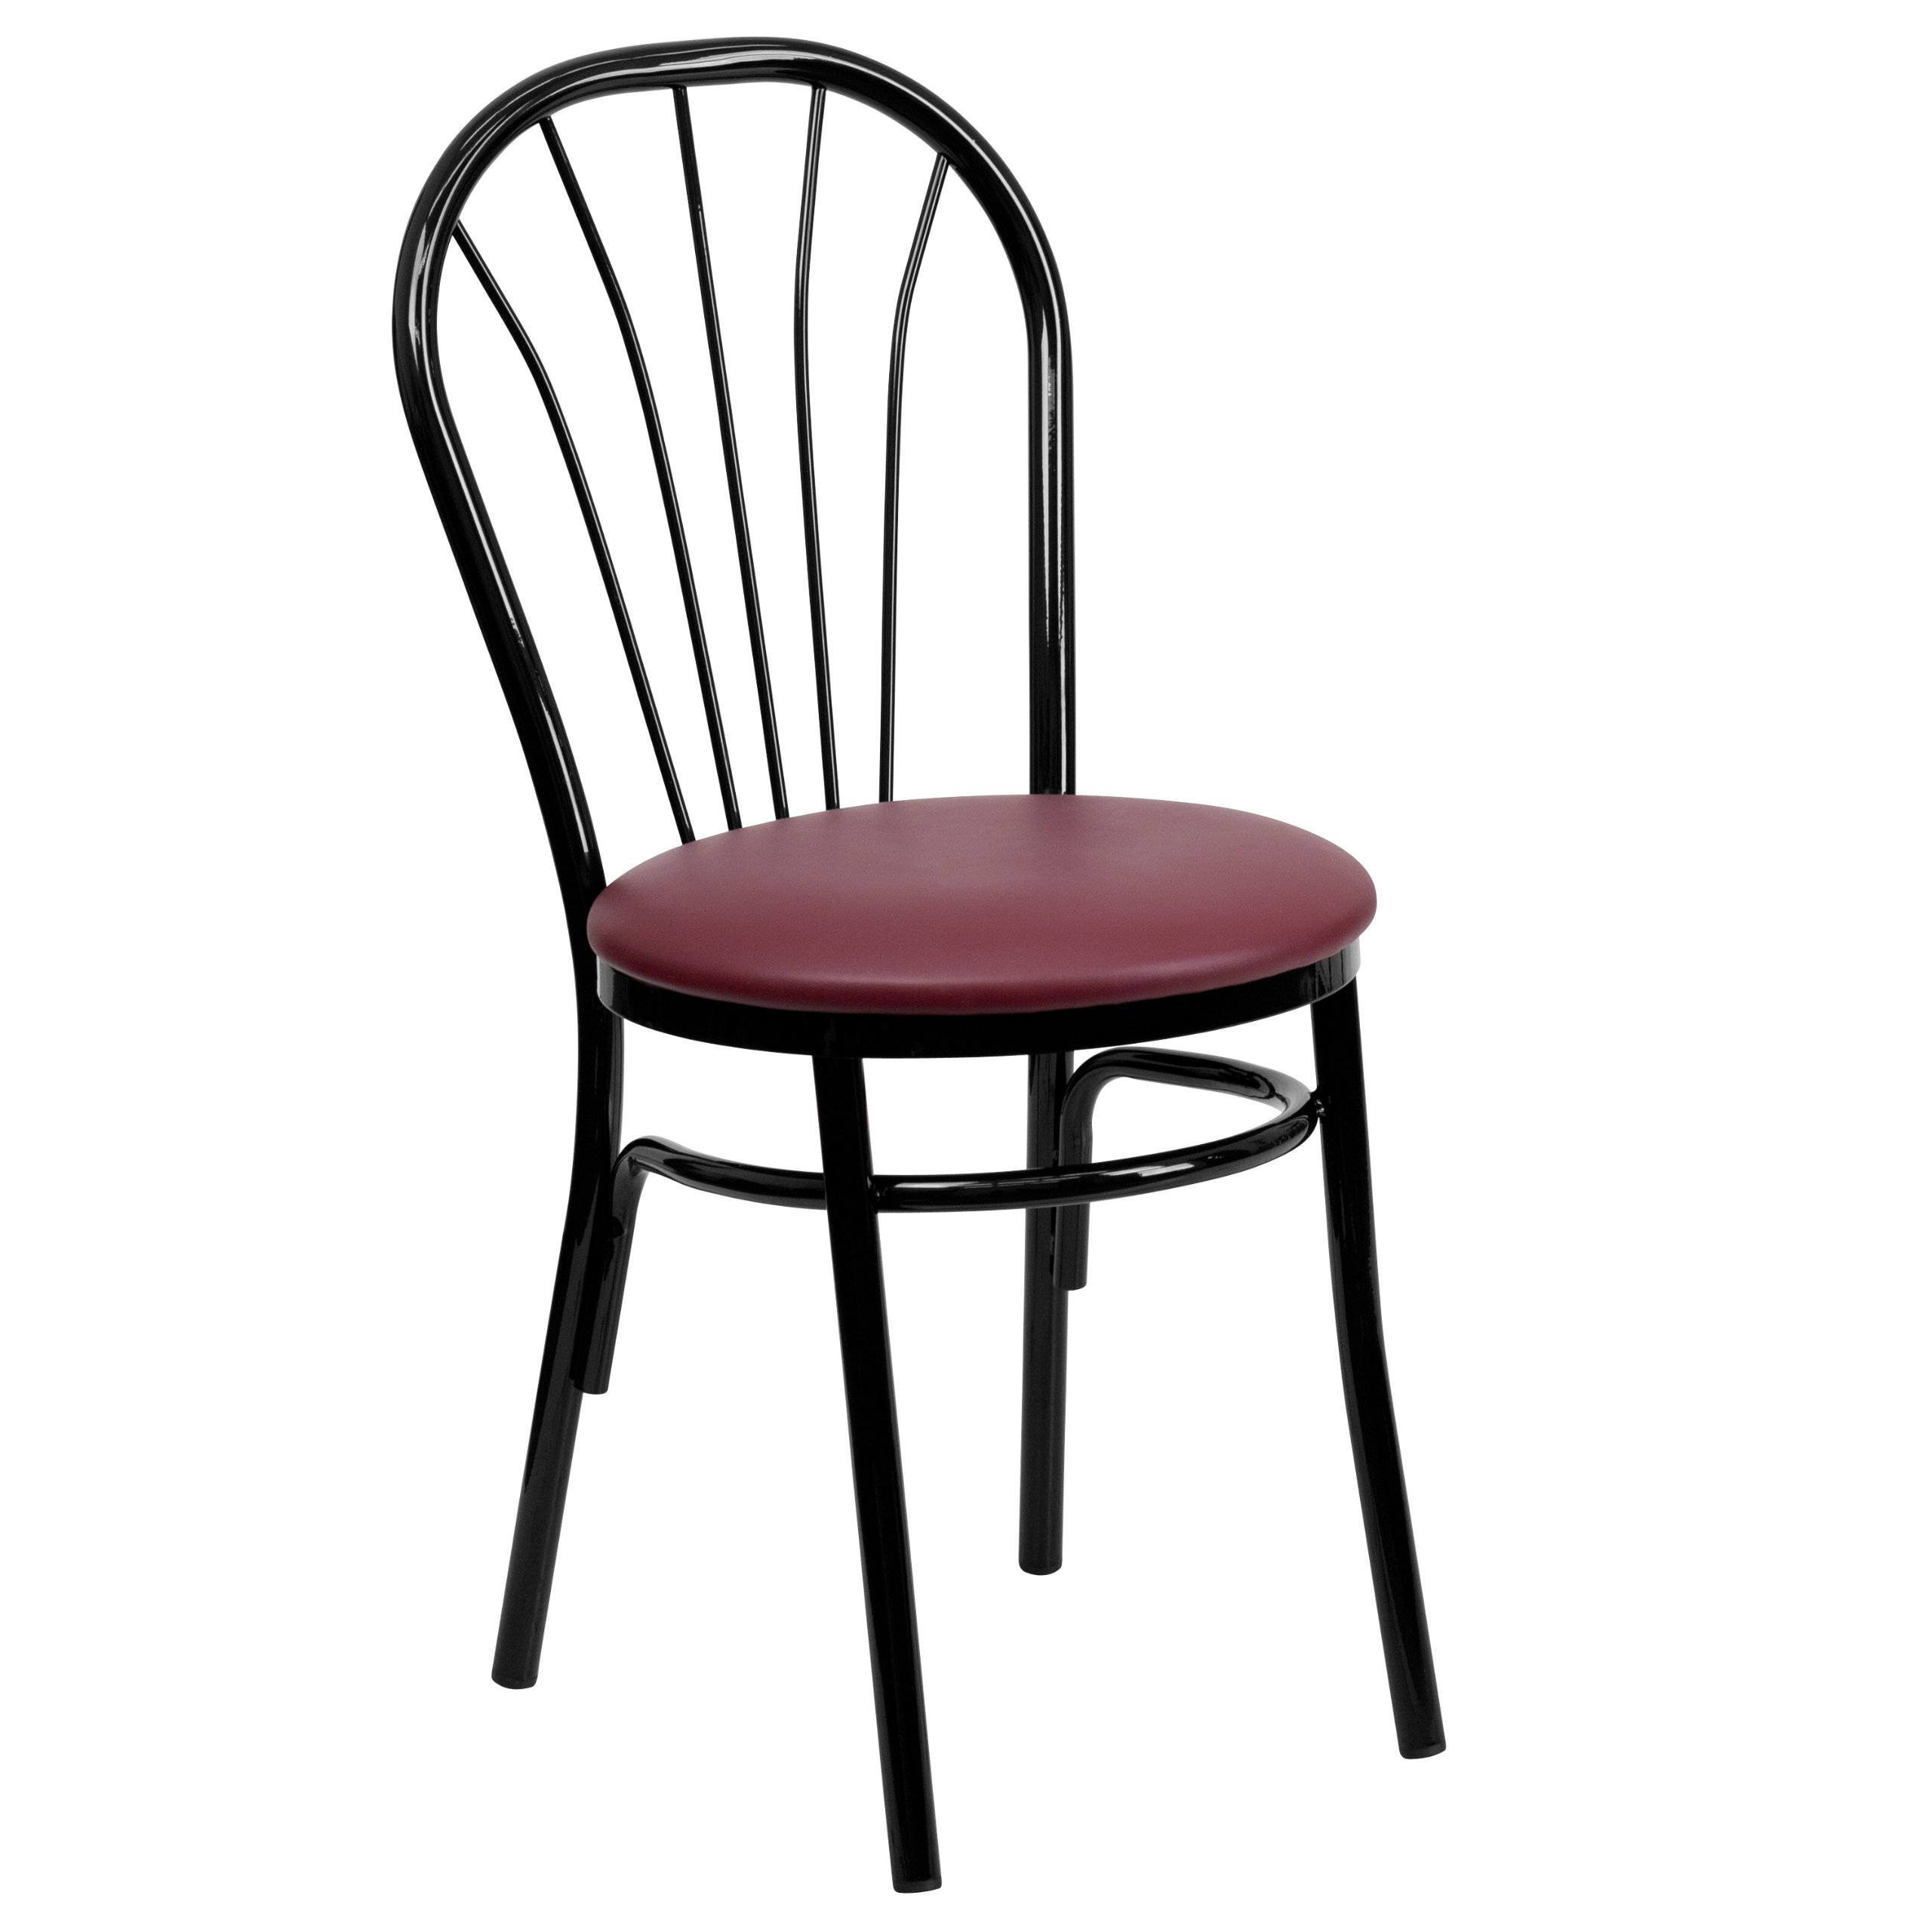 MFO Fan Back Metal Chair - Burgundy Vinyl Seat